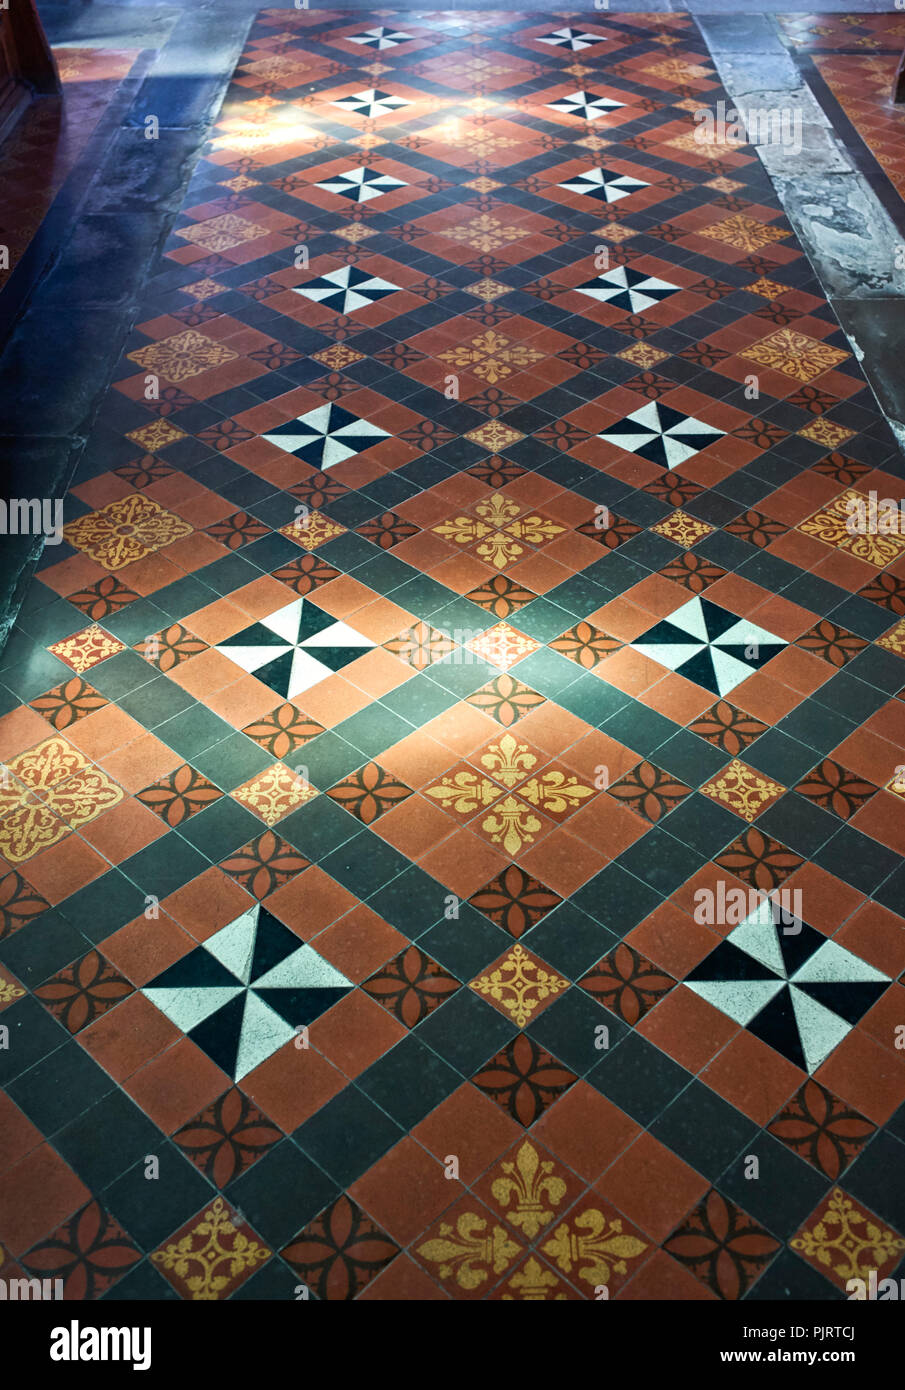 Floor tiles at St Mary and St Chad church, Brewood, South Staffordshire Stock Photo